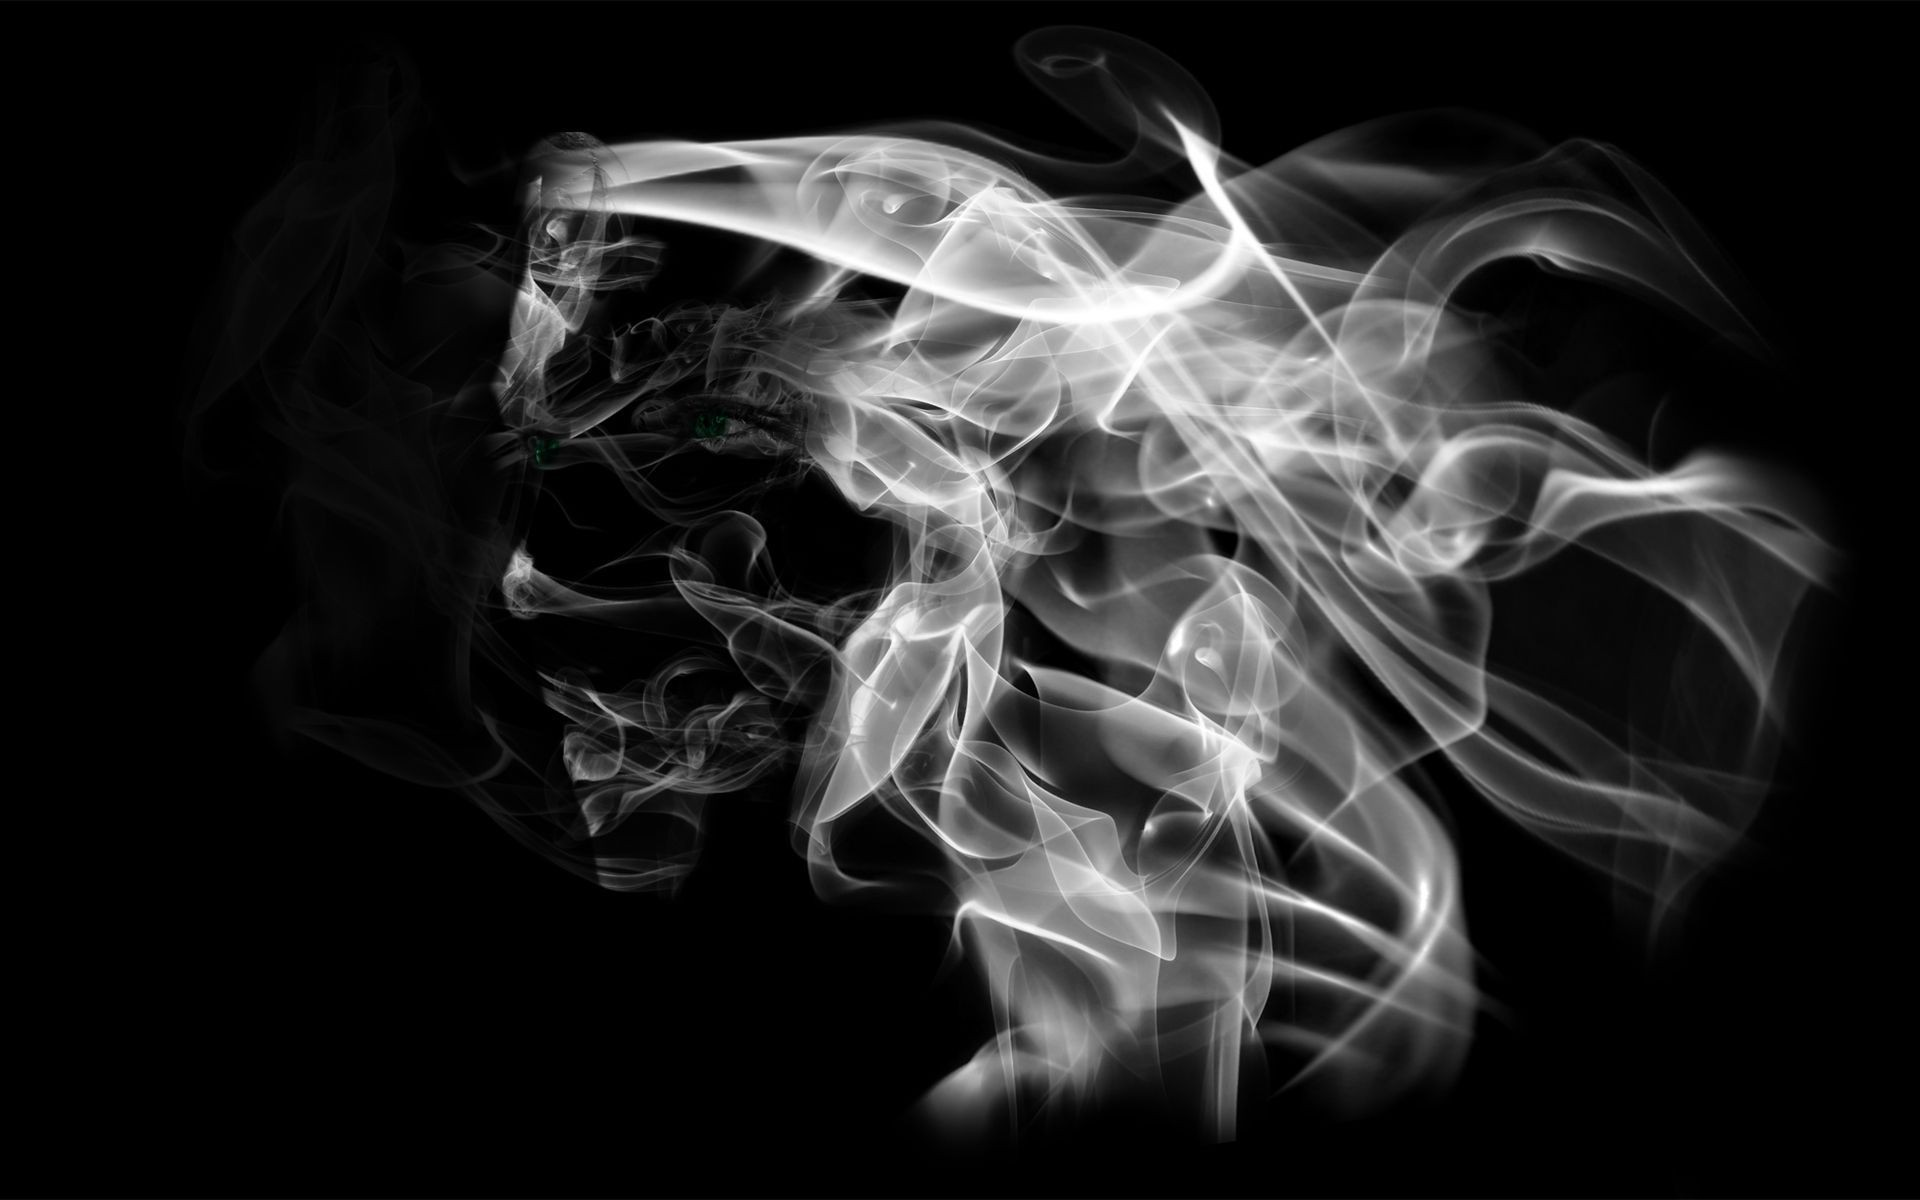 smoke wallpaper download free cool backgrounds for desktop